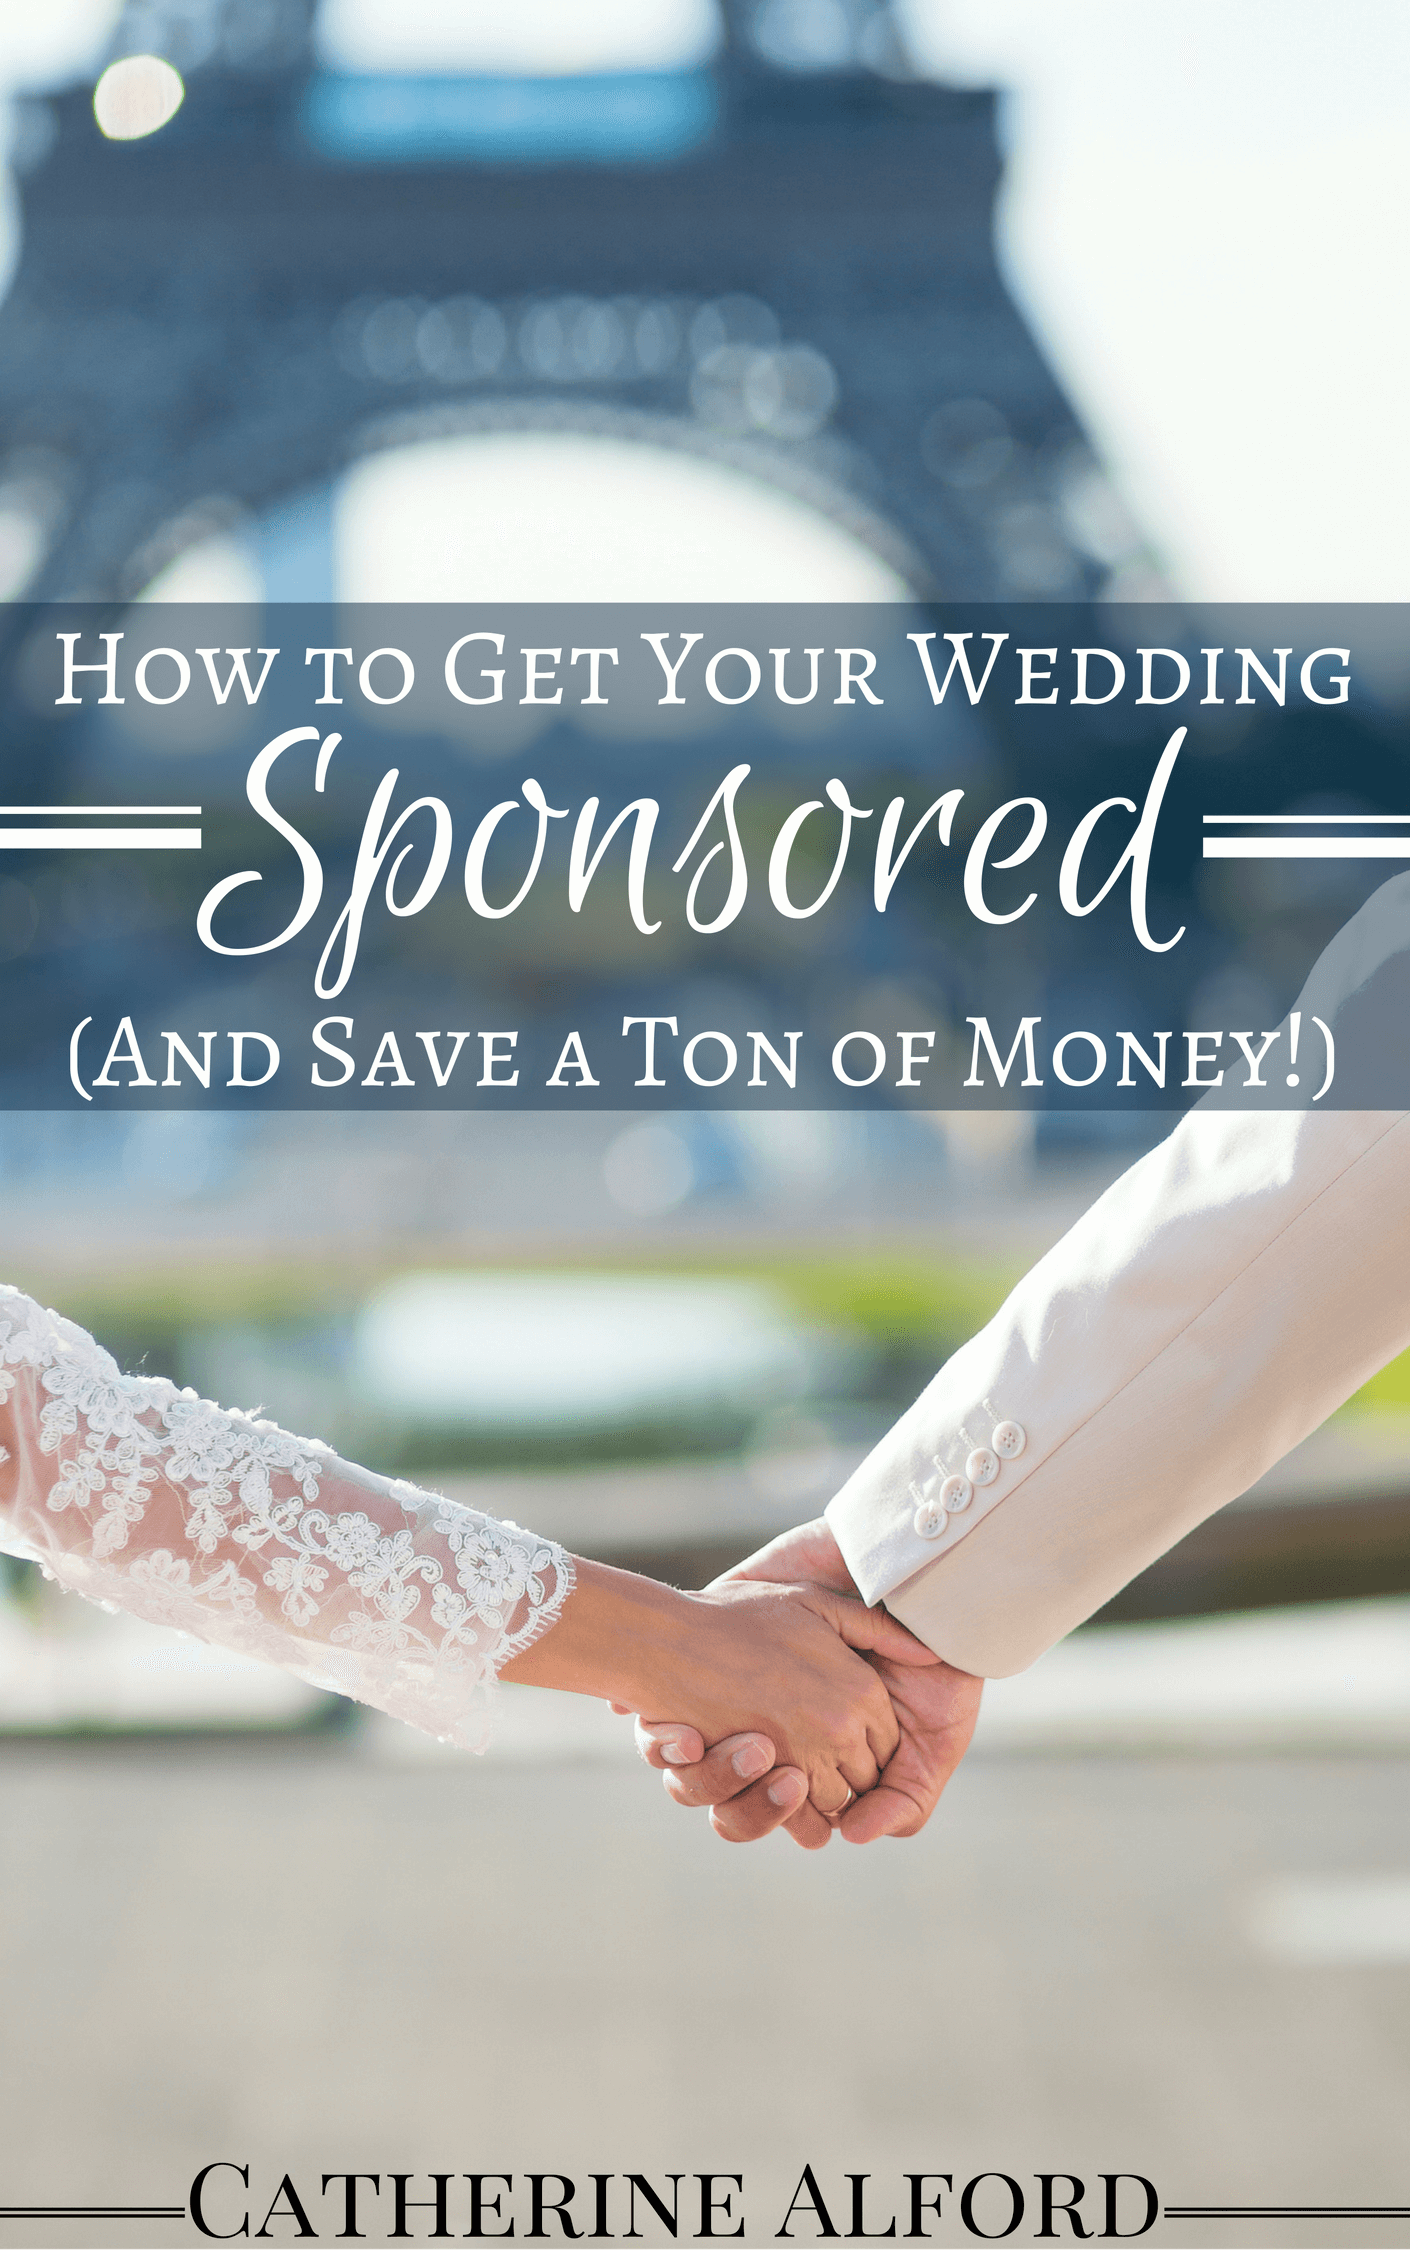 How To Get Your Wedding Sponsored Save Lots Of Money Catherine